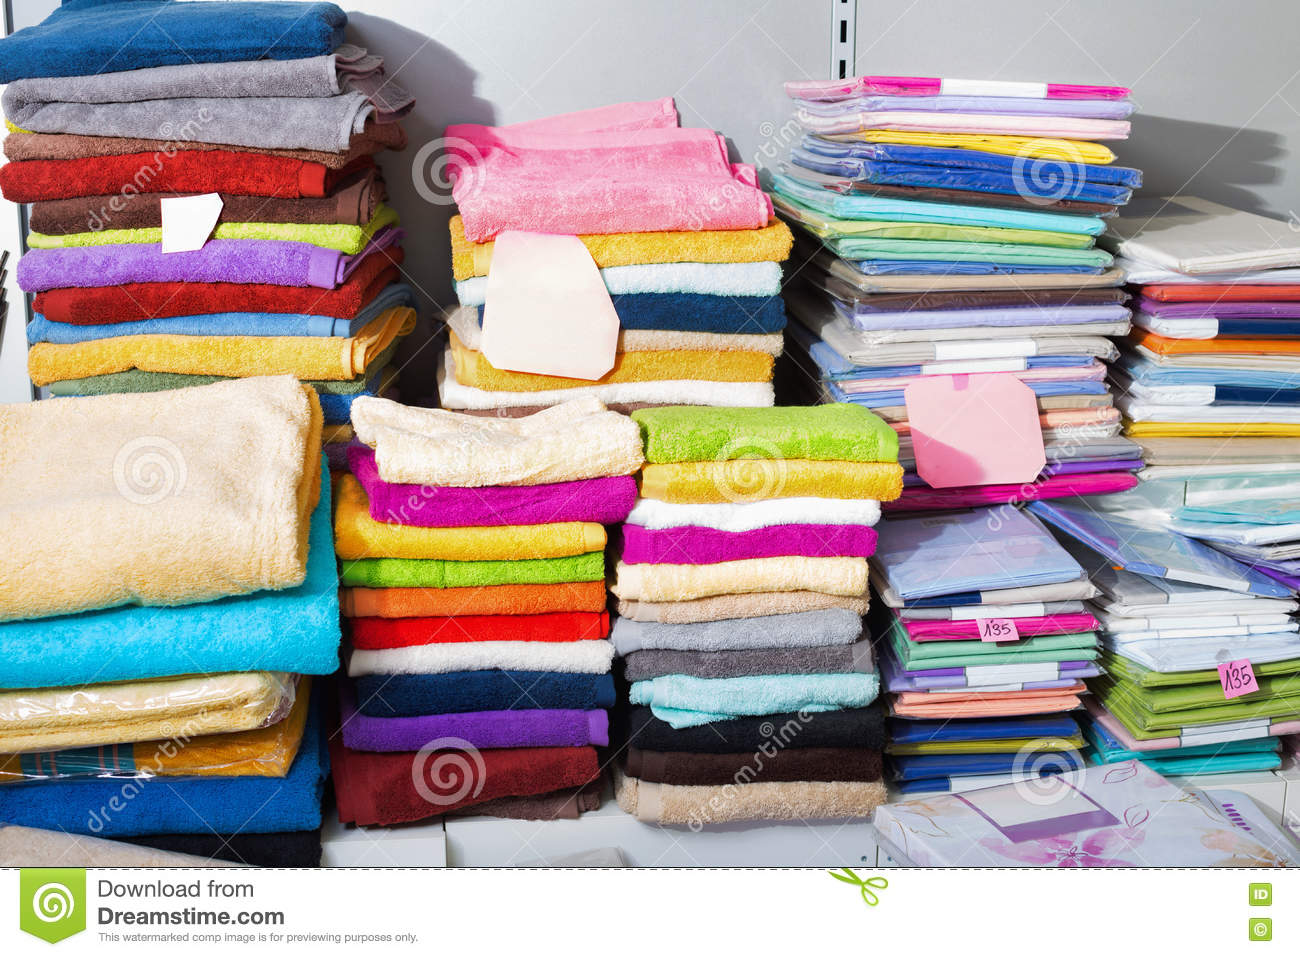 Download Detail View Of Loop Towels And Bed Sheets Stock Image   Image Of  Cloth,